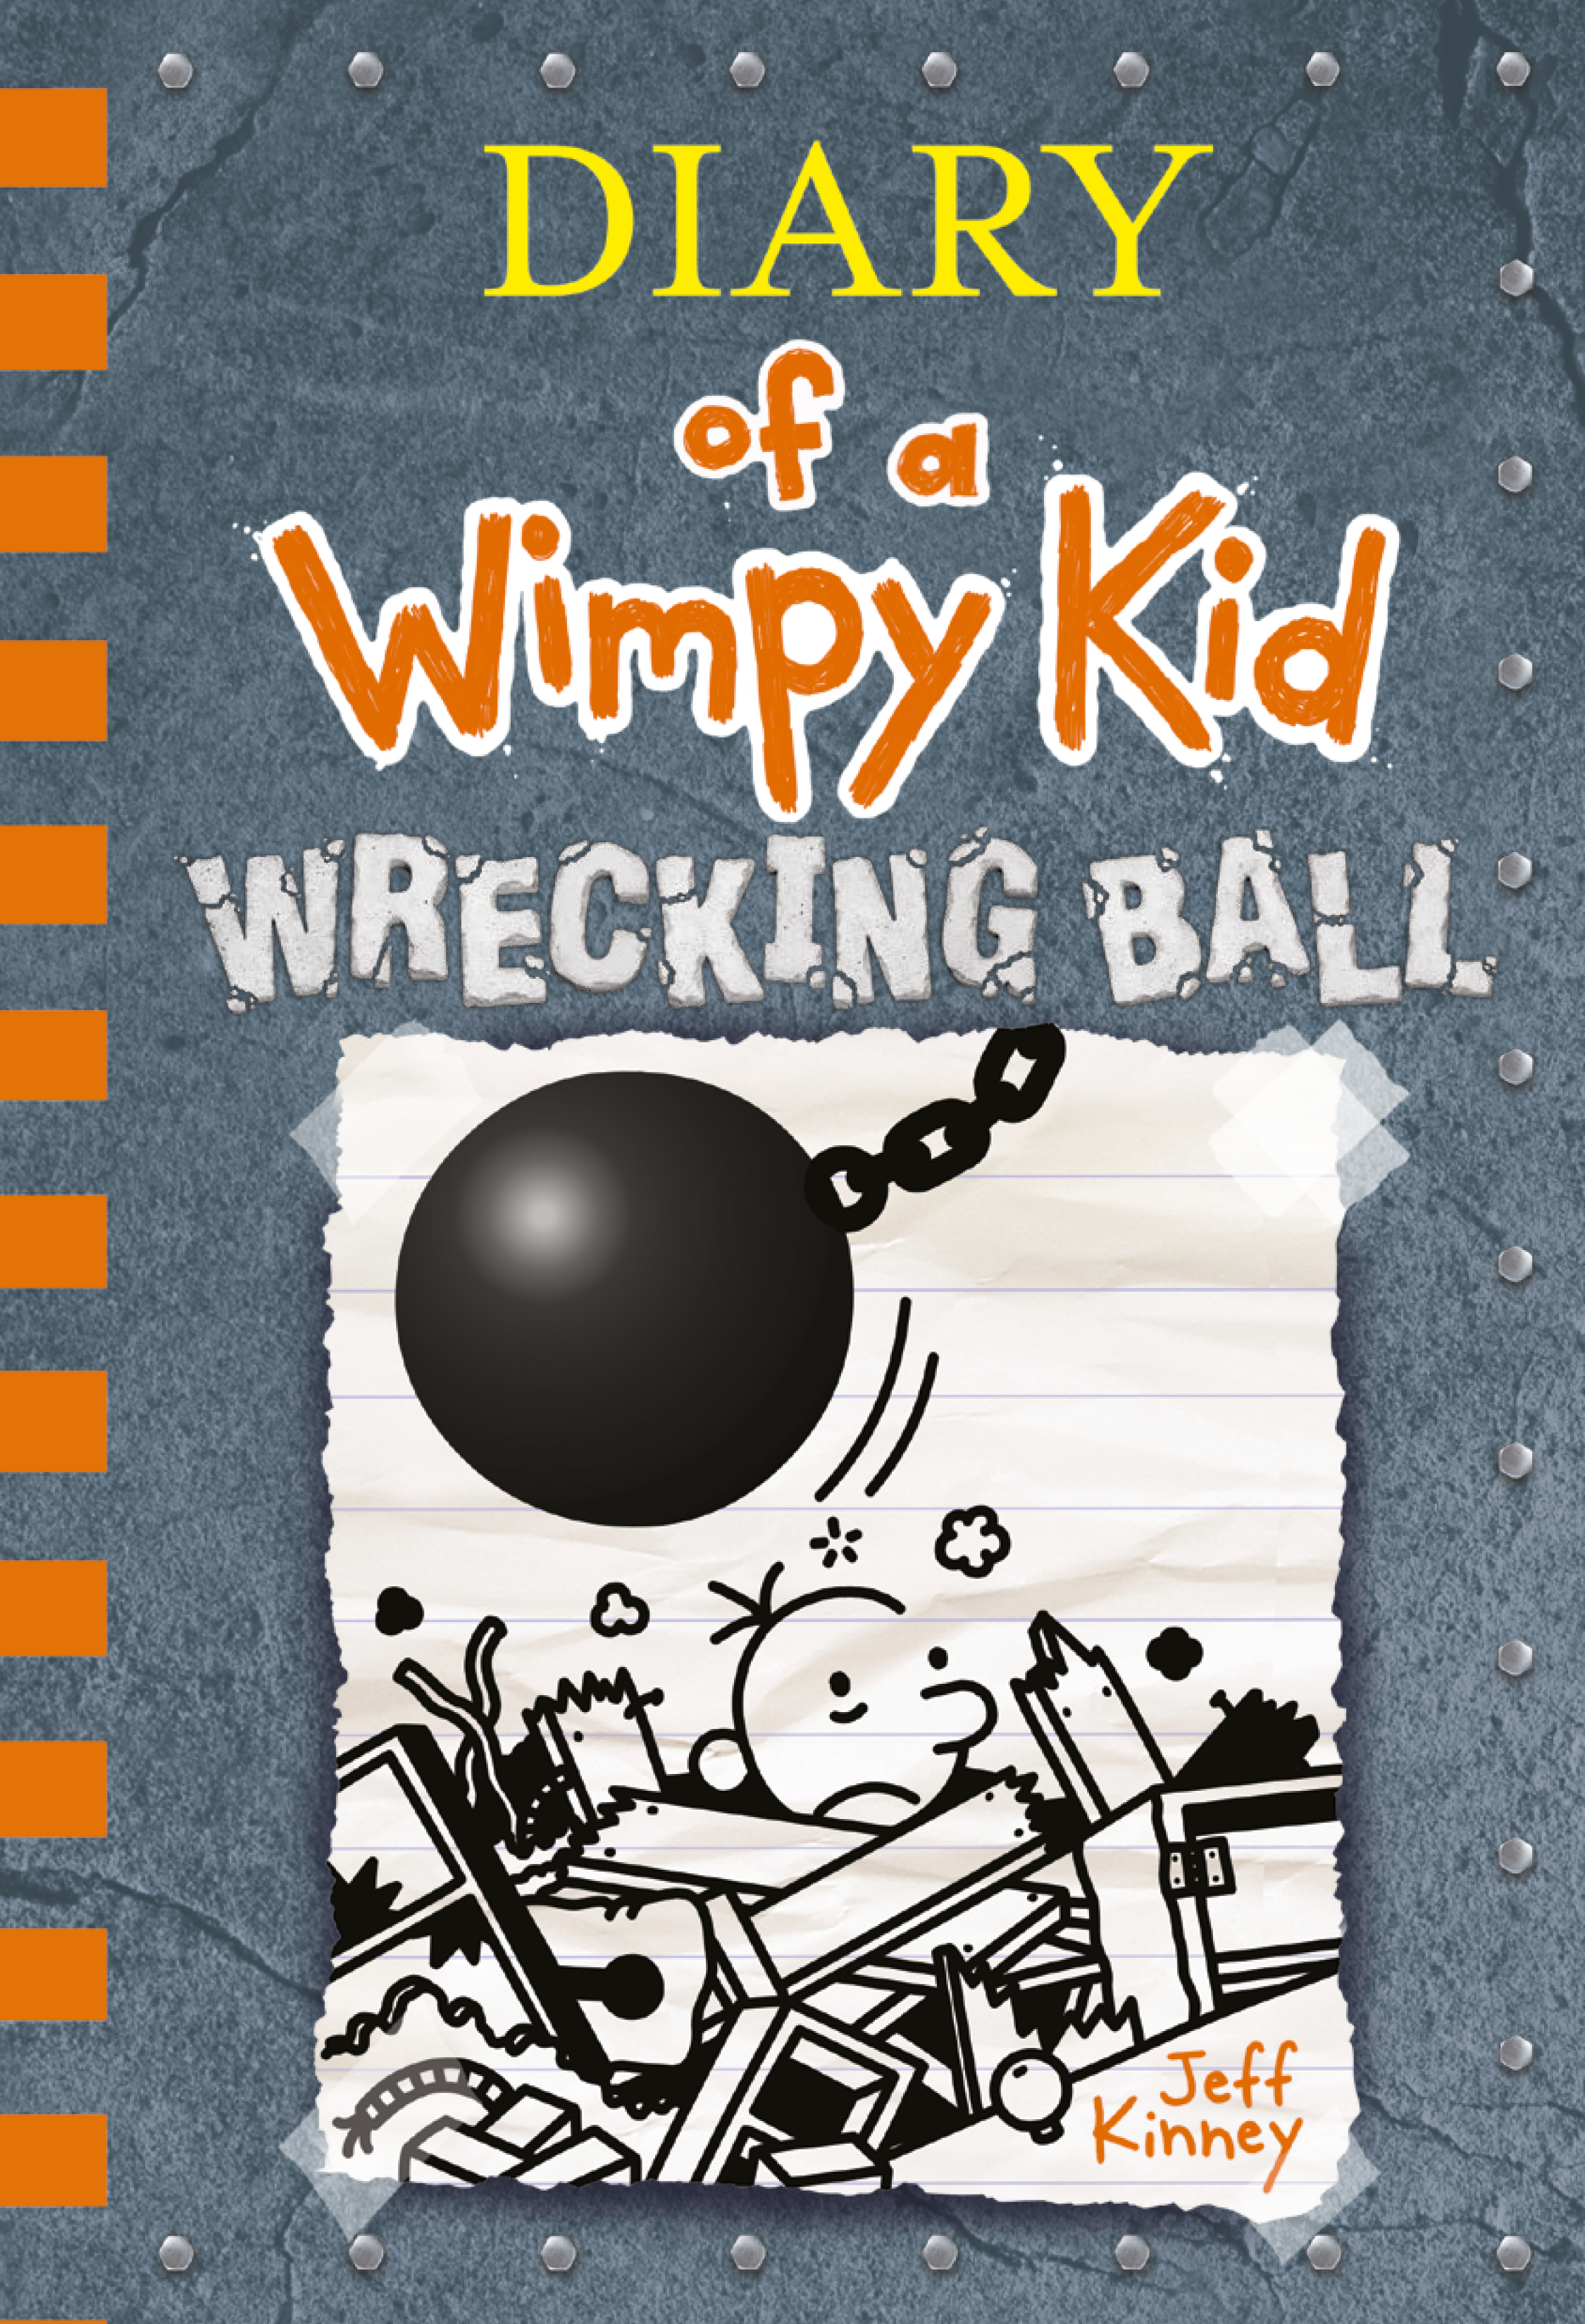 Cover Image of Wrecking Ball (Diary of a Wimpy Kid Book 14)